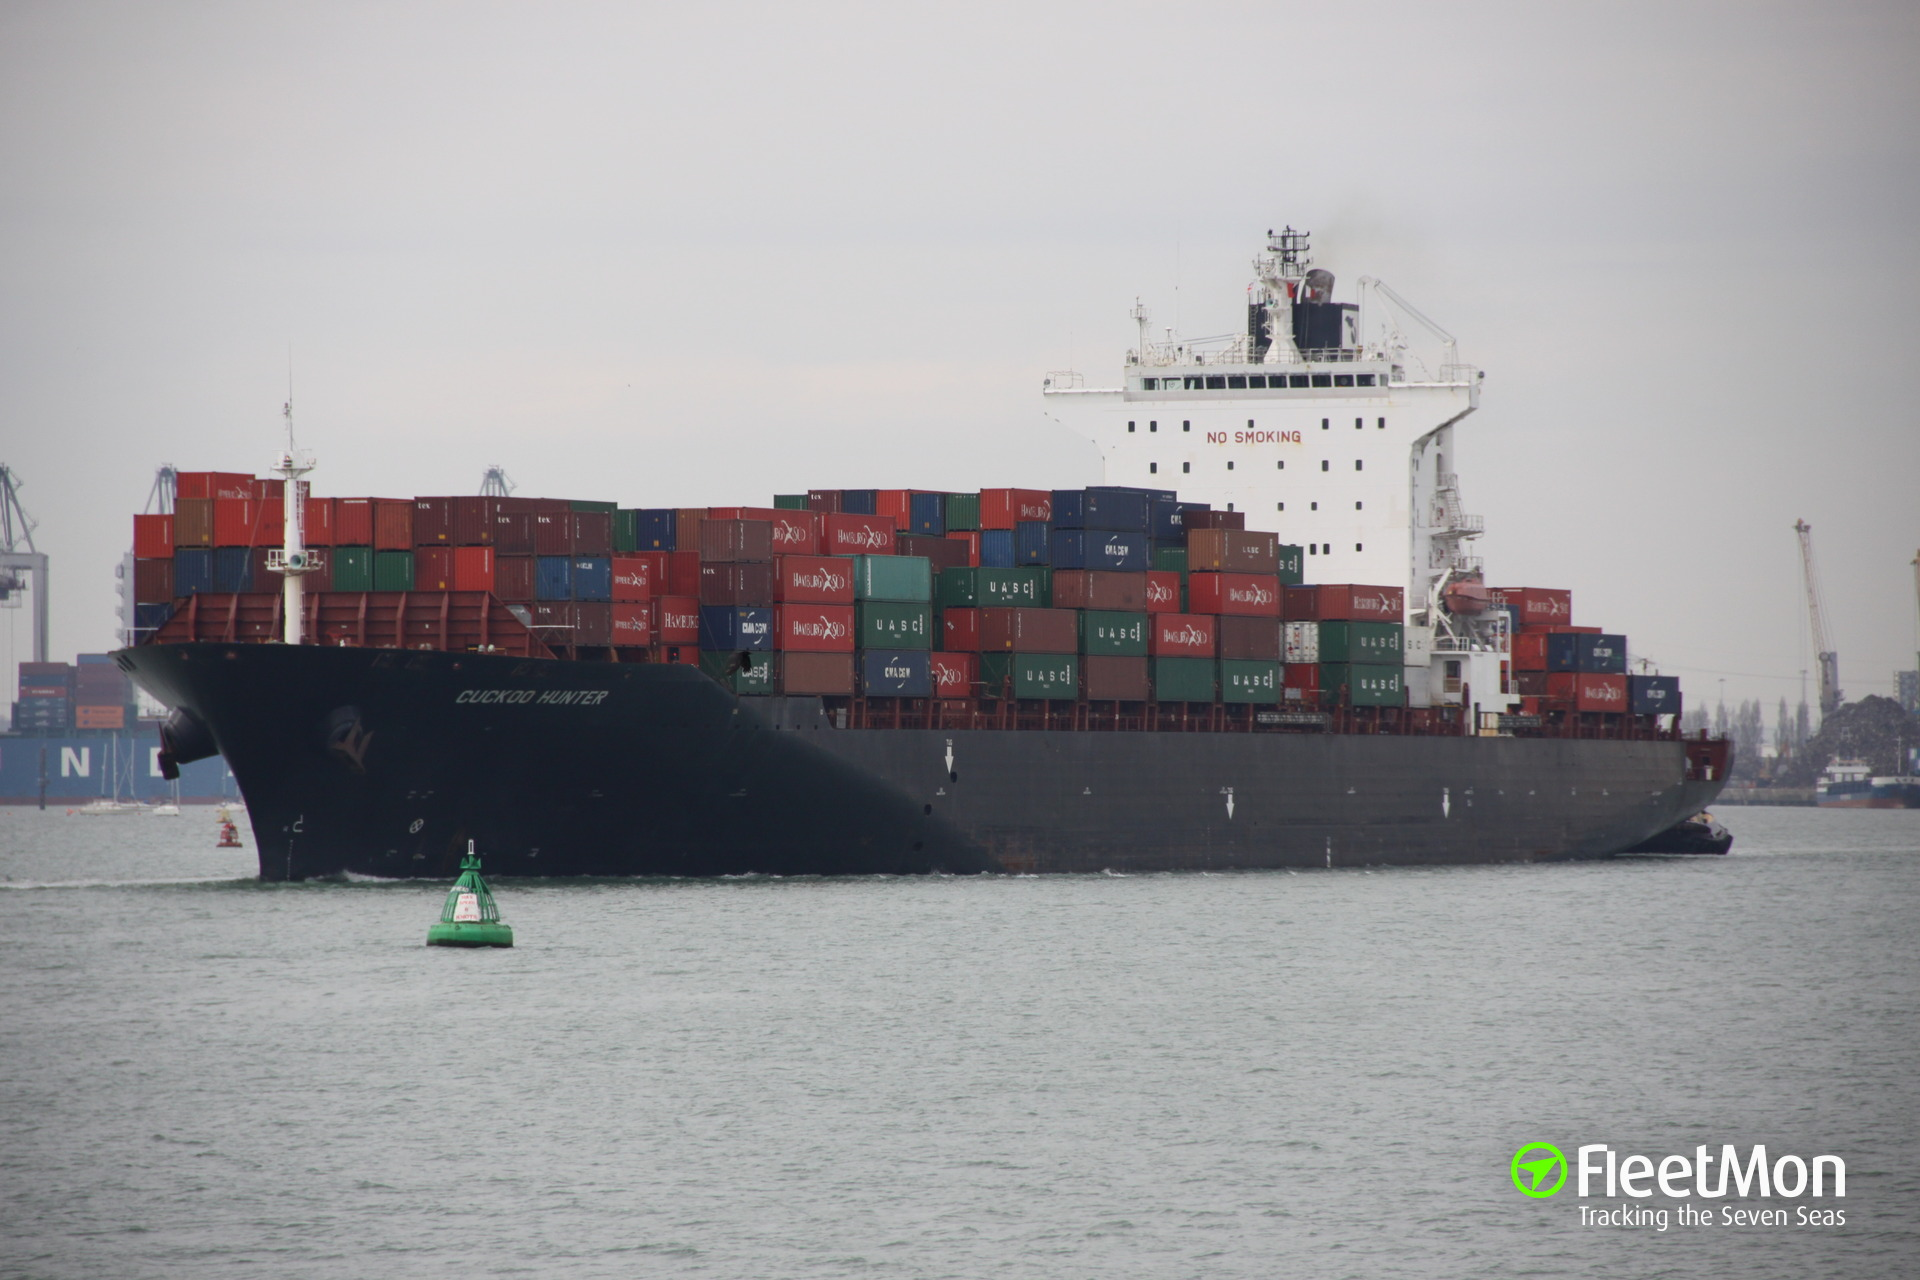 Container ship E R New York broke from her moorings, Timaru